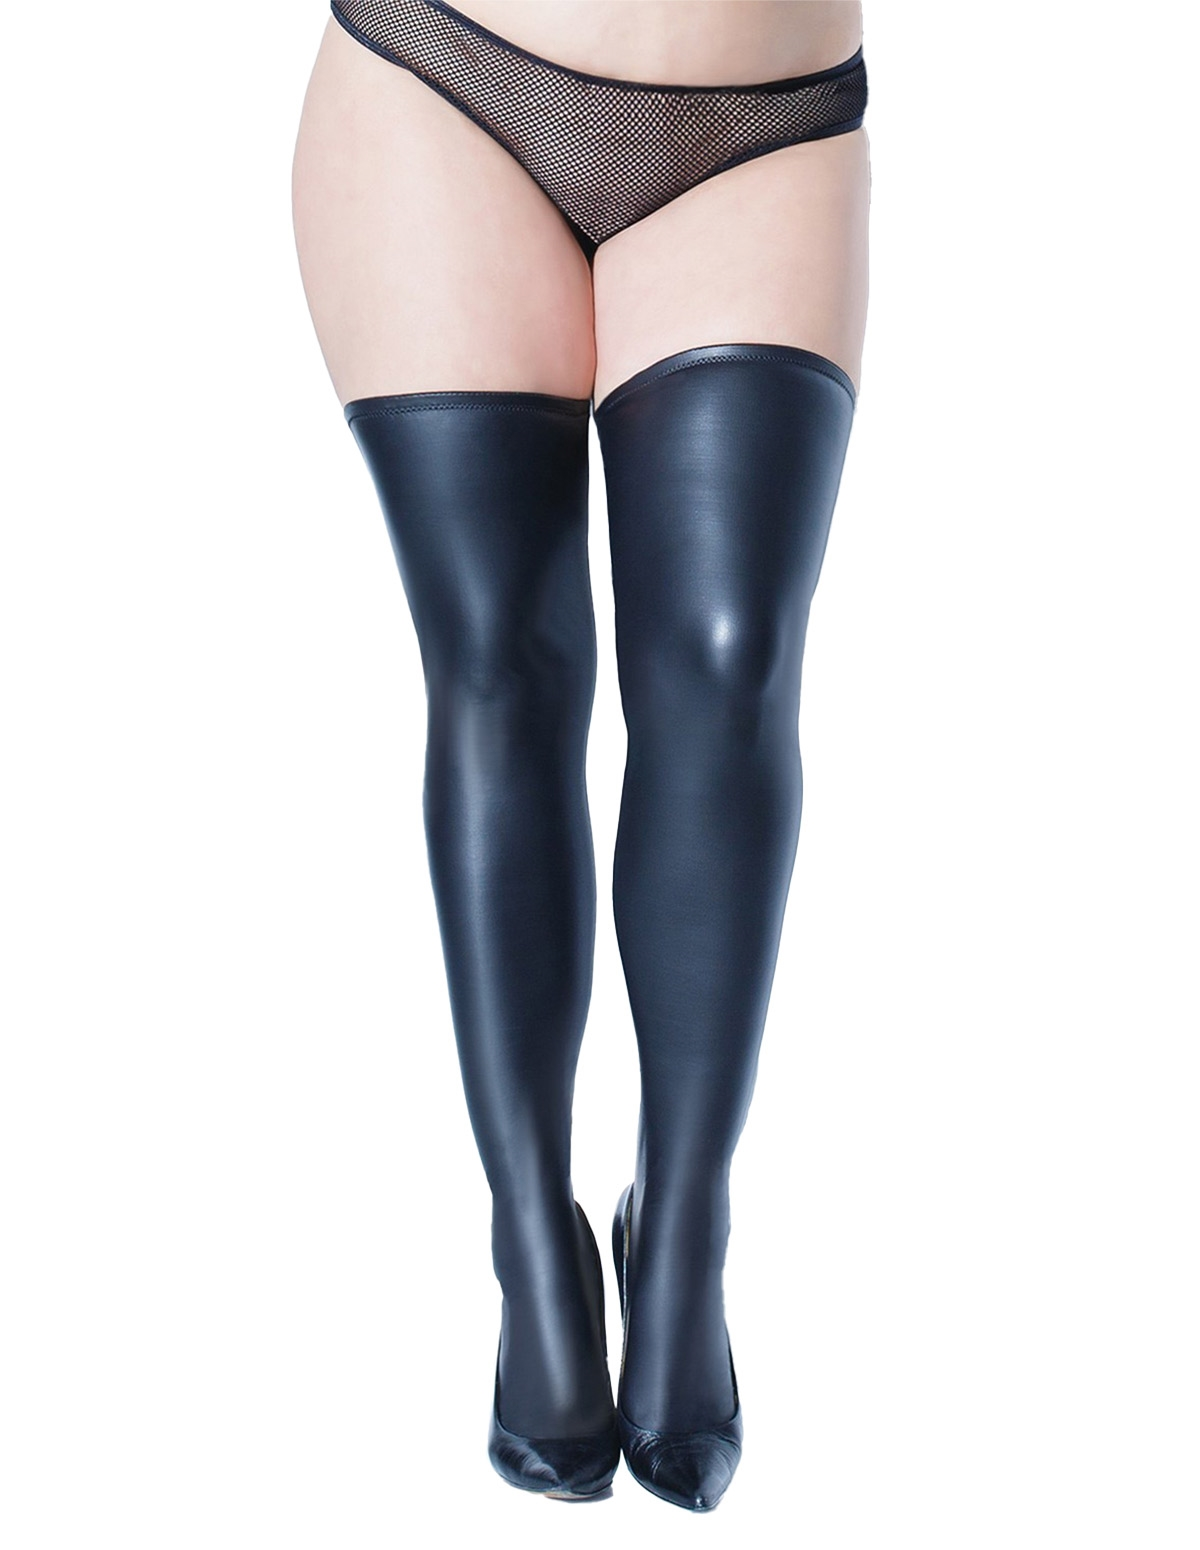 Matte Wet Look Stay Up Stockings